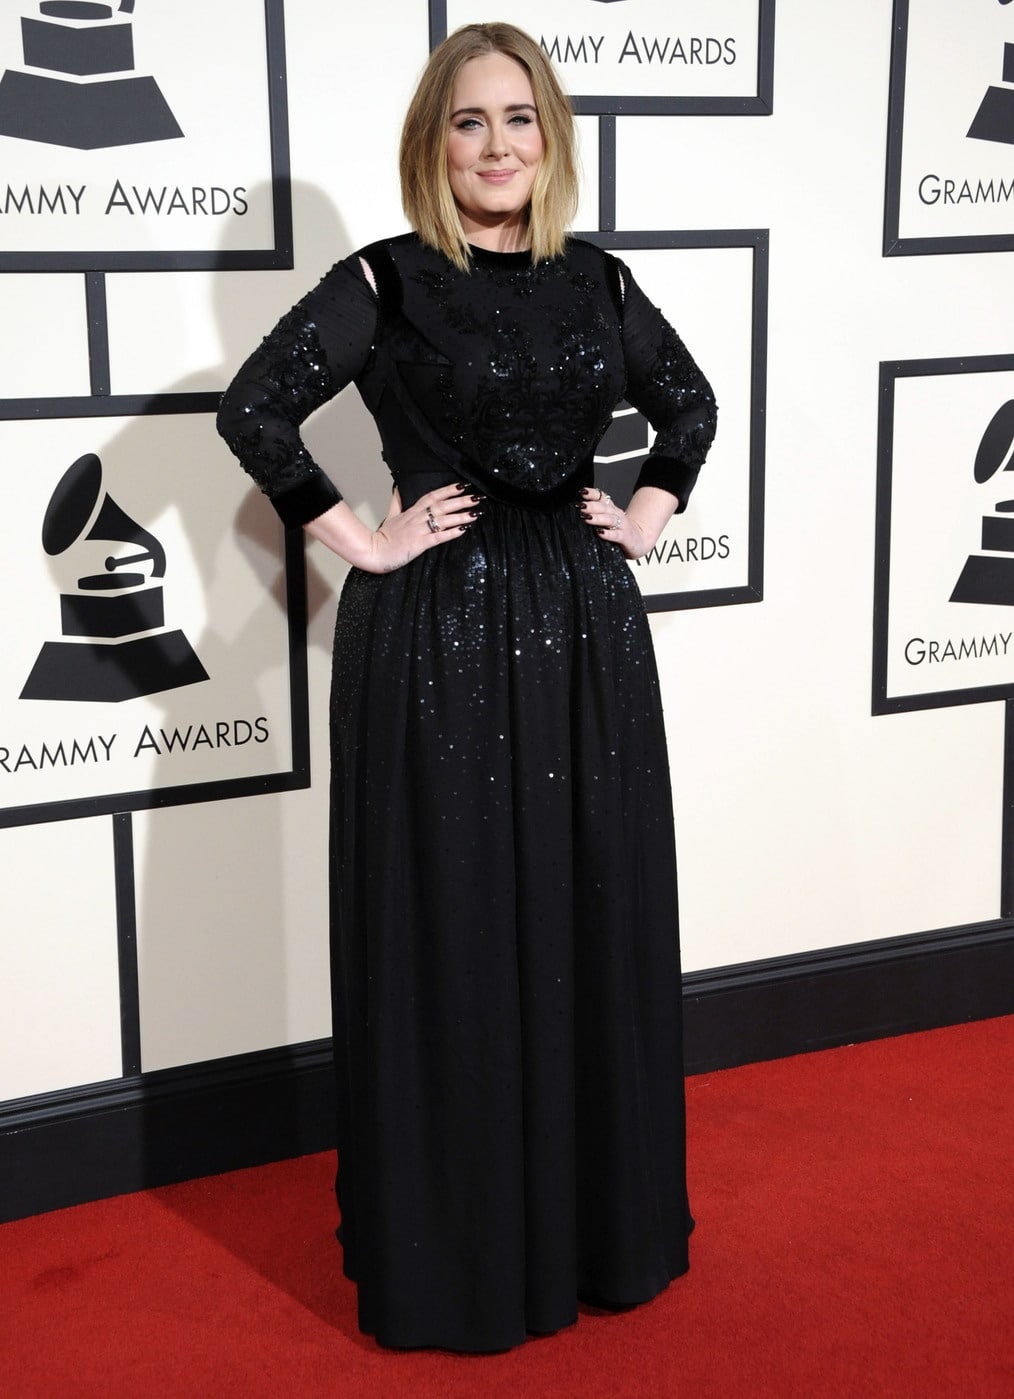 Adele in Givenchy at the 2016 Grammy Awards